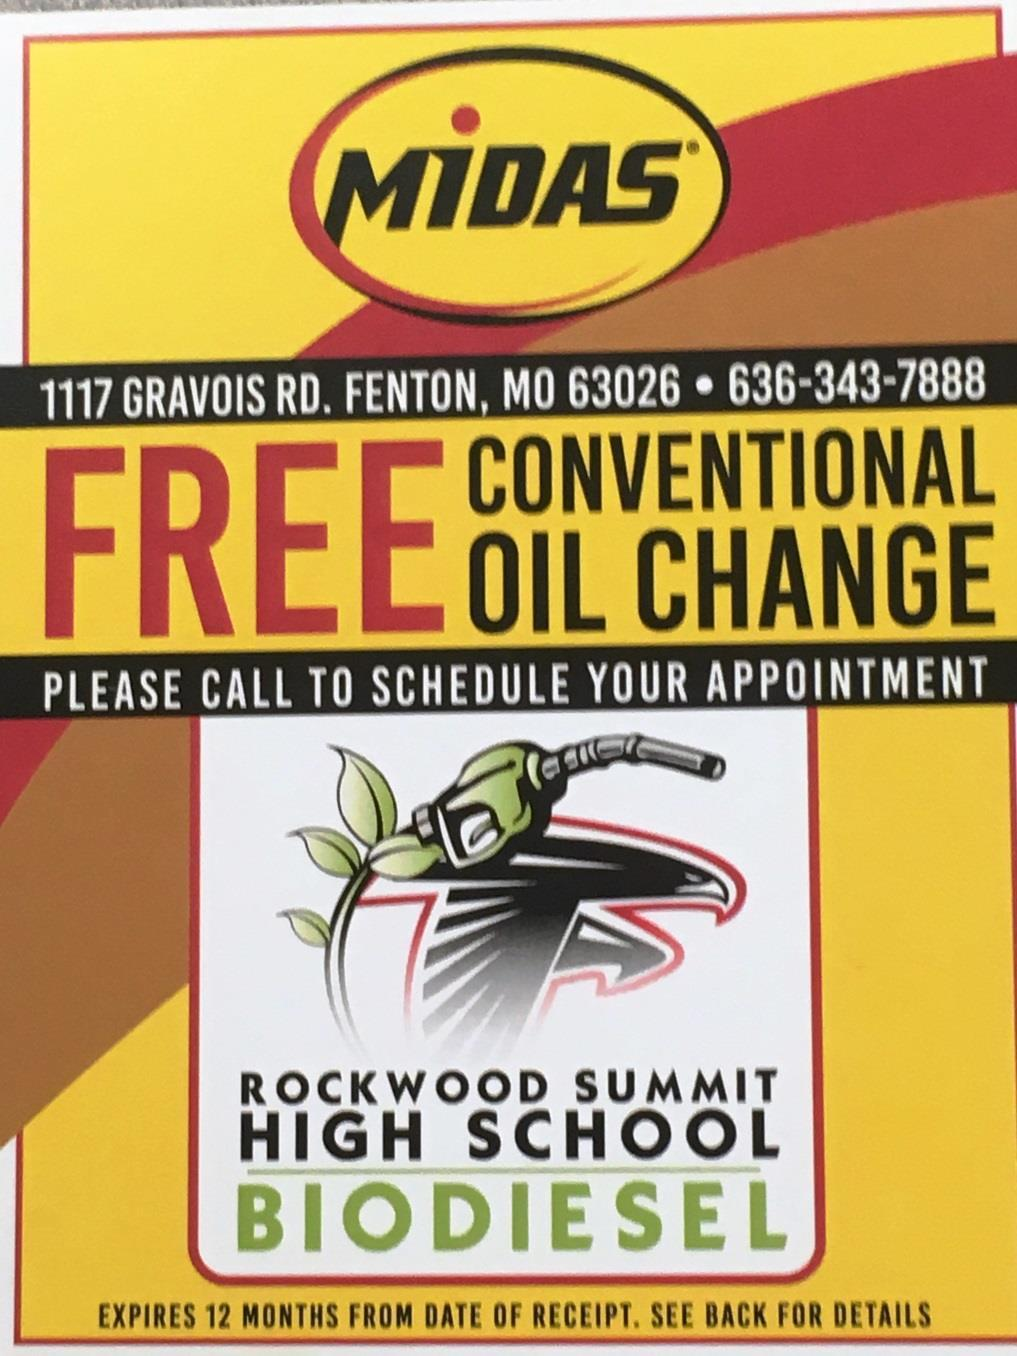 Biodiesel *Midas of Fenton is providing oil change coupons for the Rockwood Summit